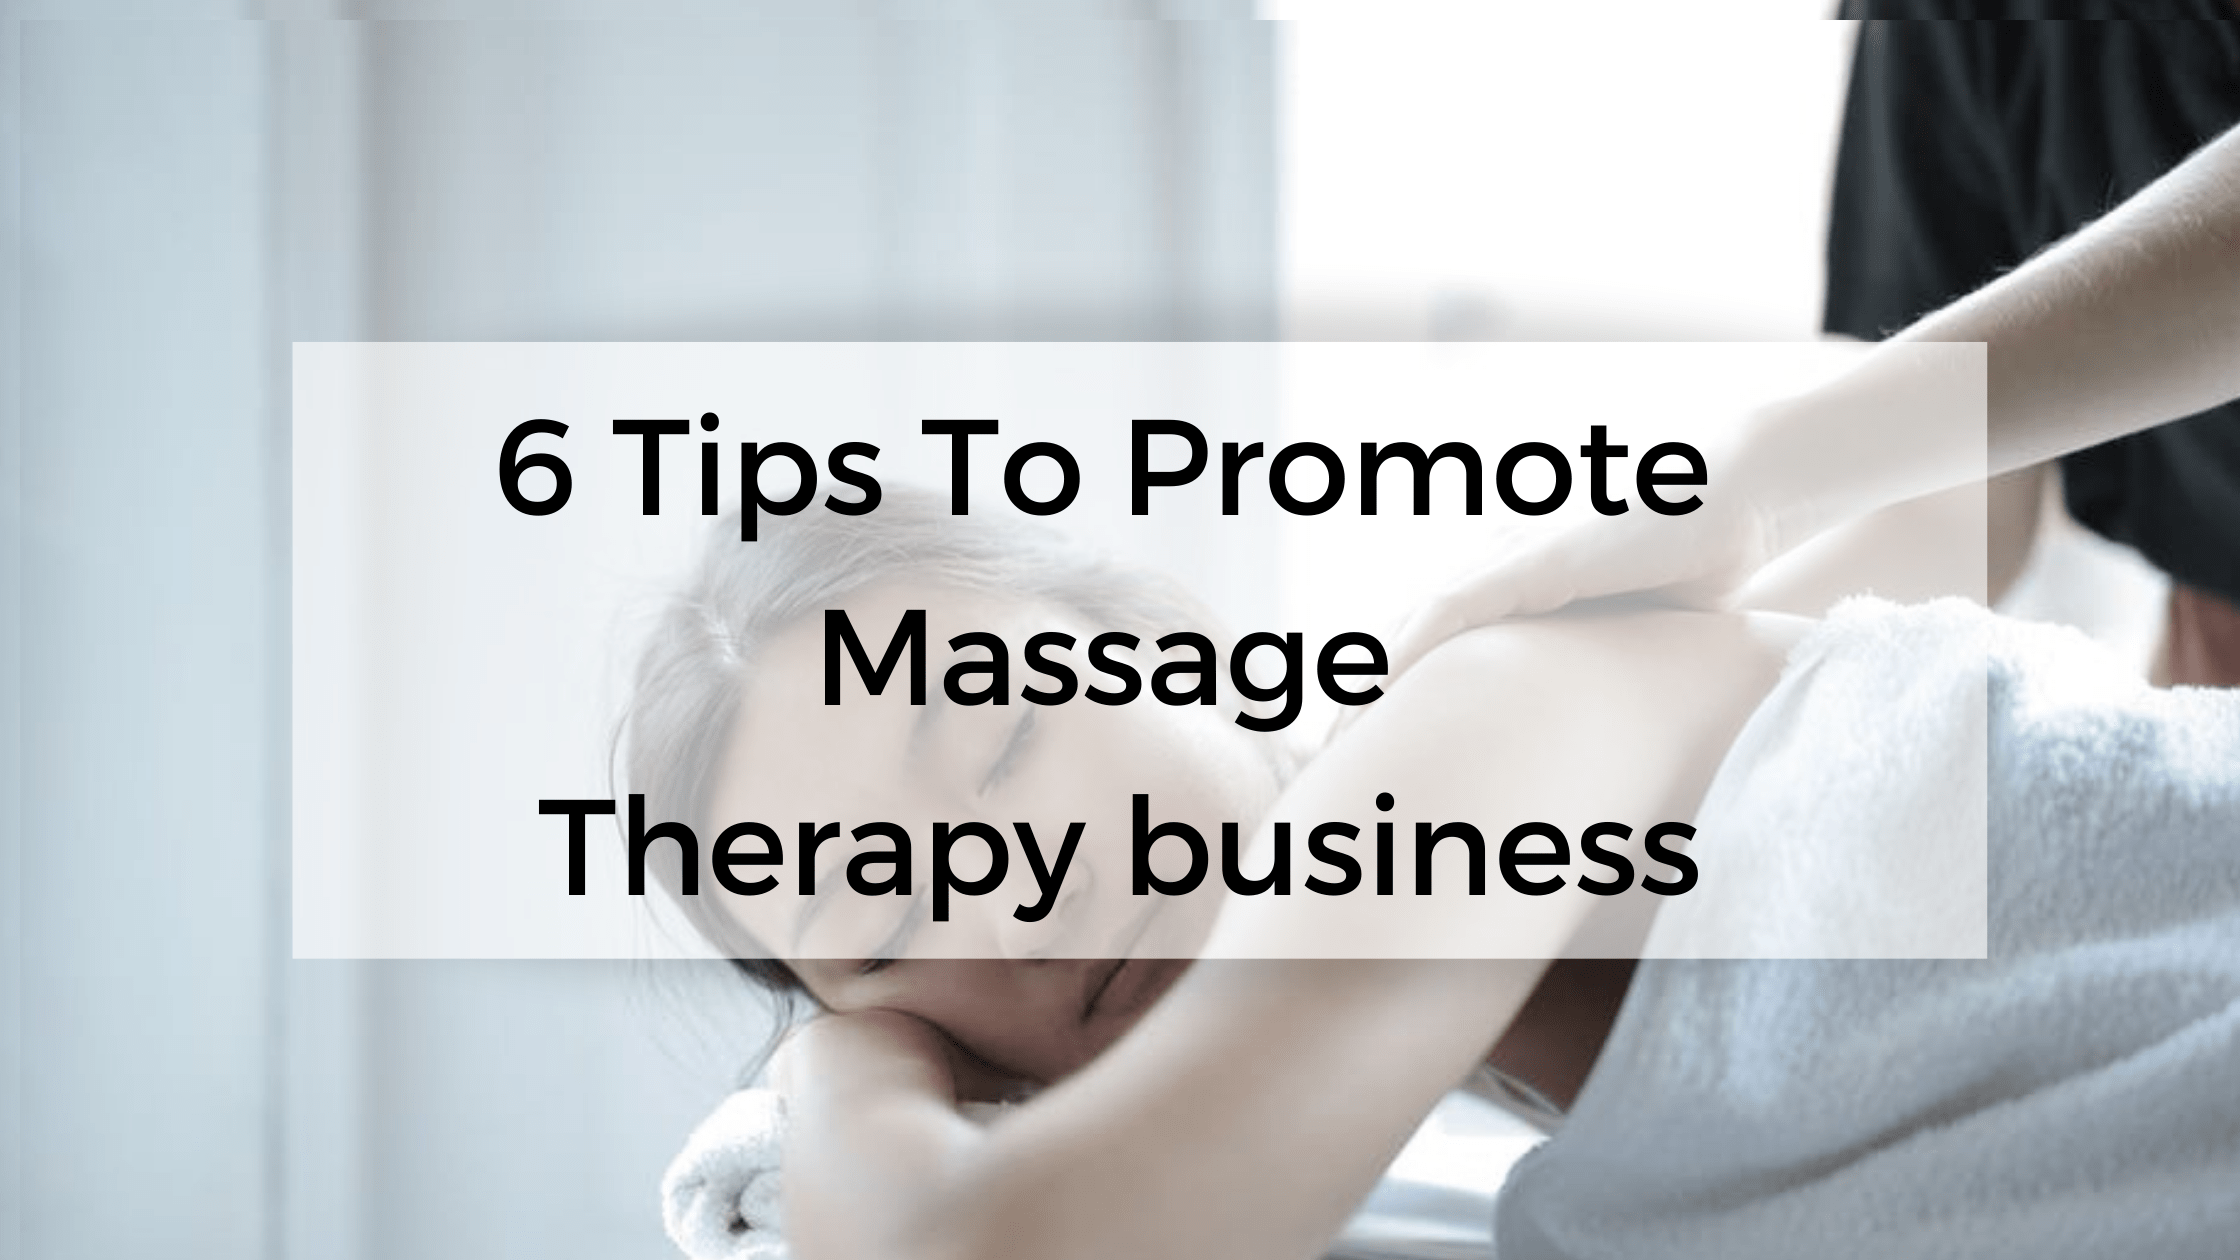 You are currently viewing How to promote massage therapy business?